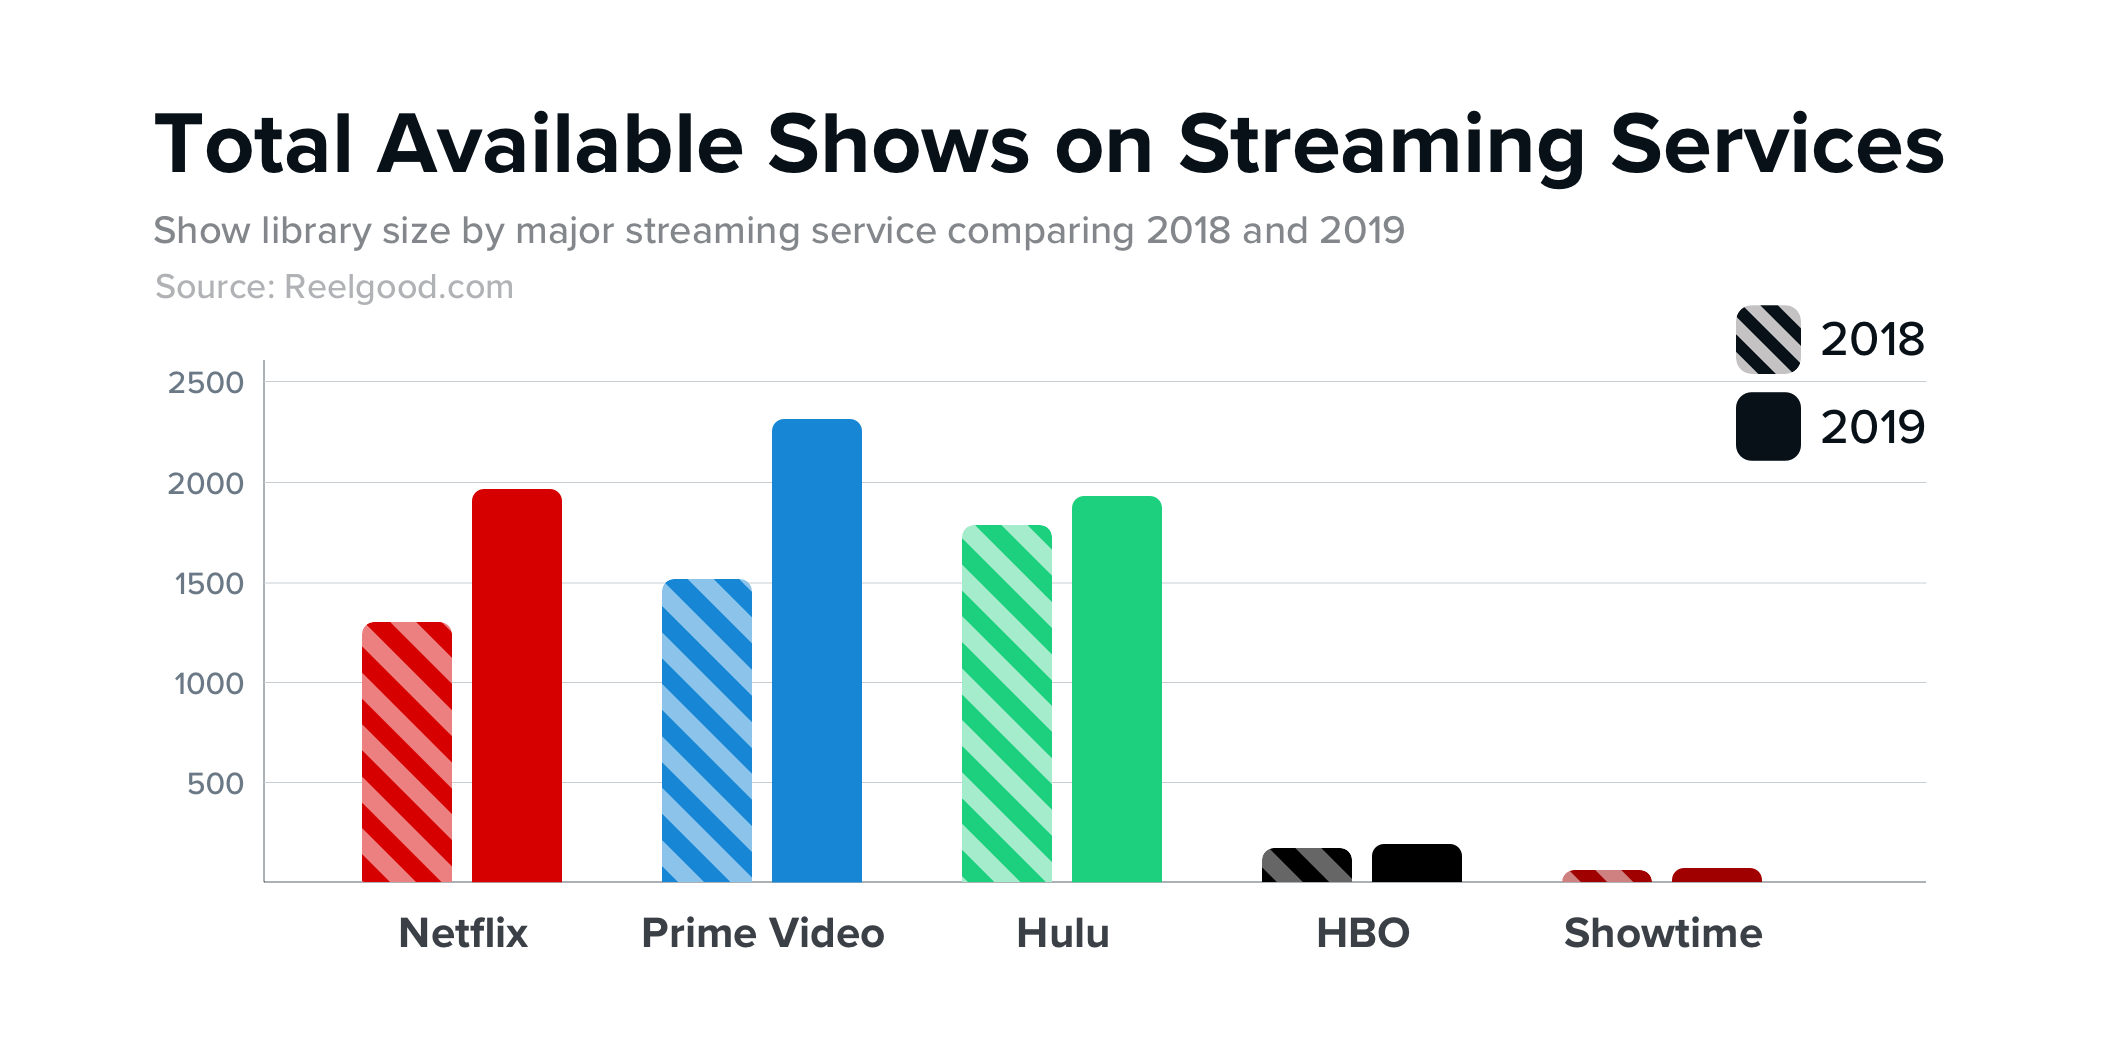 Total Available Shows on Streaming Services 2018 - 2019